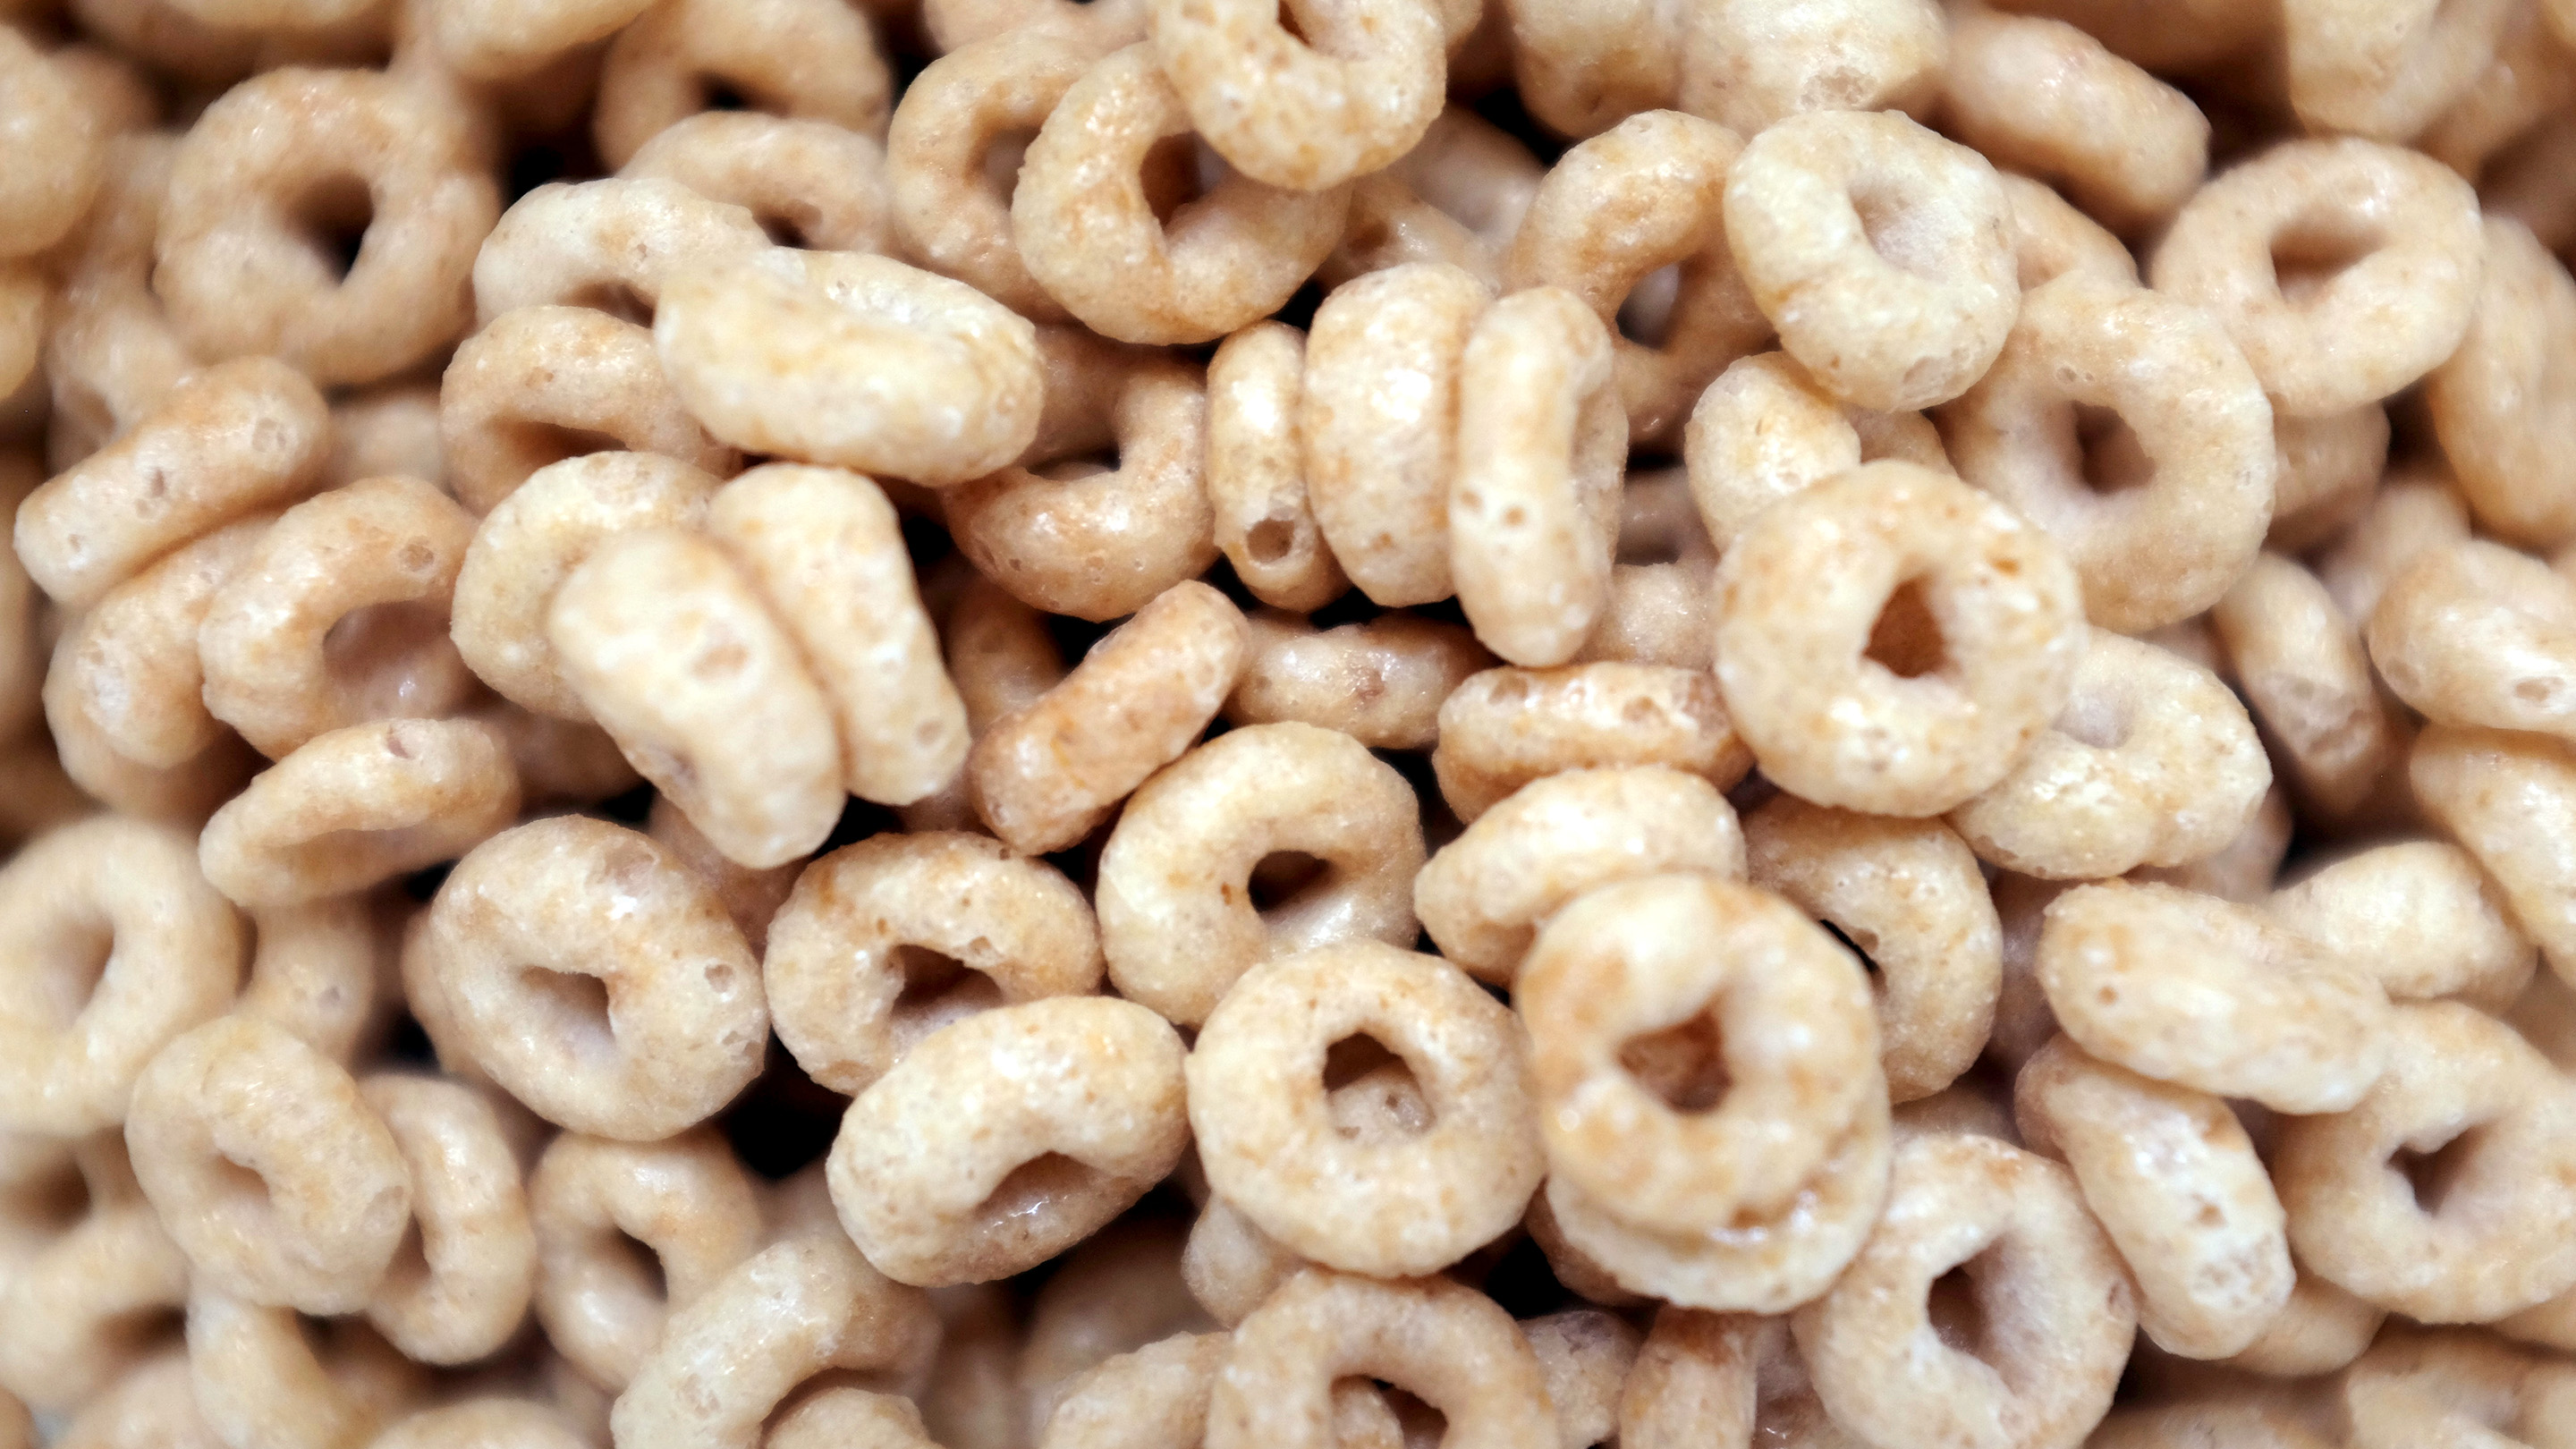 General Mills Shareholders To Vote On Use Of Genetically Modified Organisms In Its Products